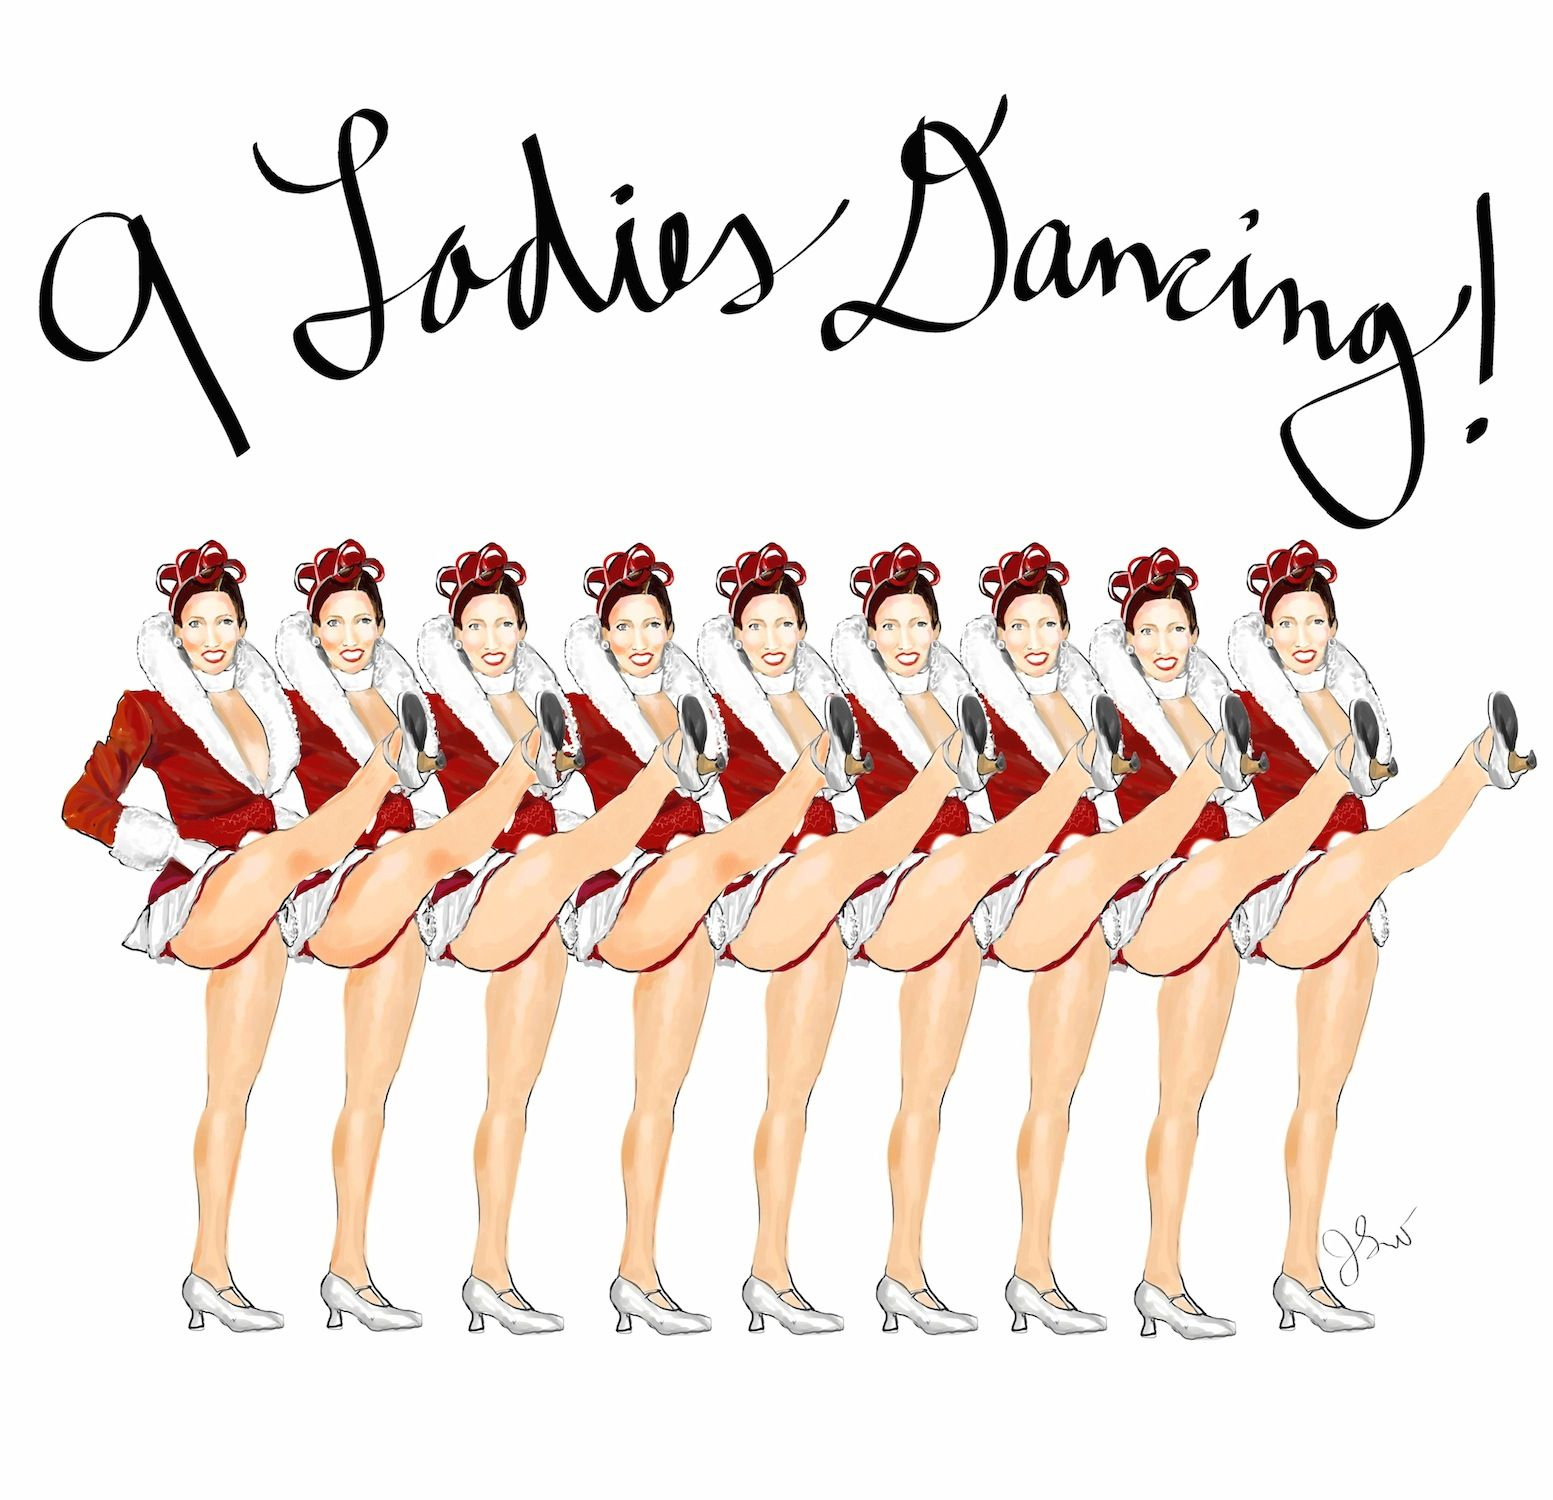 hight resolution of from thefrancofly com s 12 days of christmas 9 ladies dancing radio city rockettes humor christmas carol